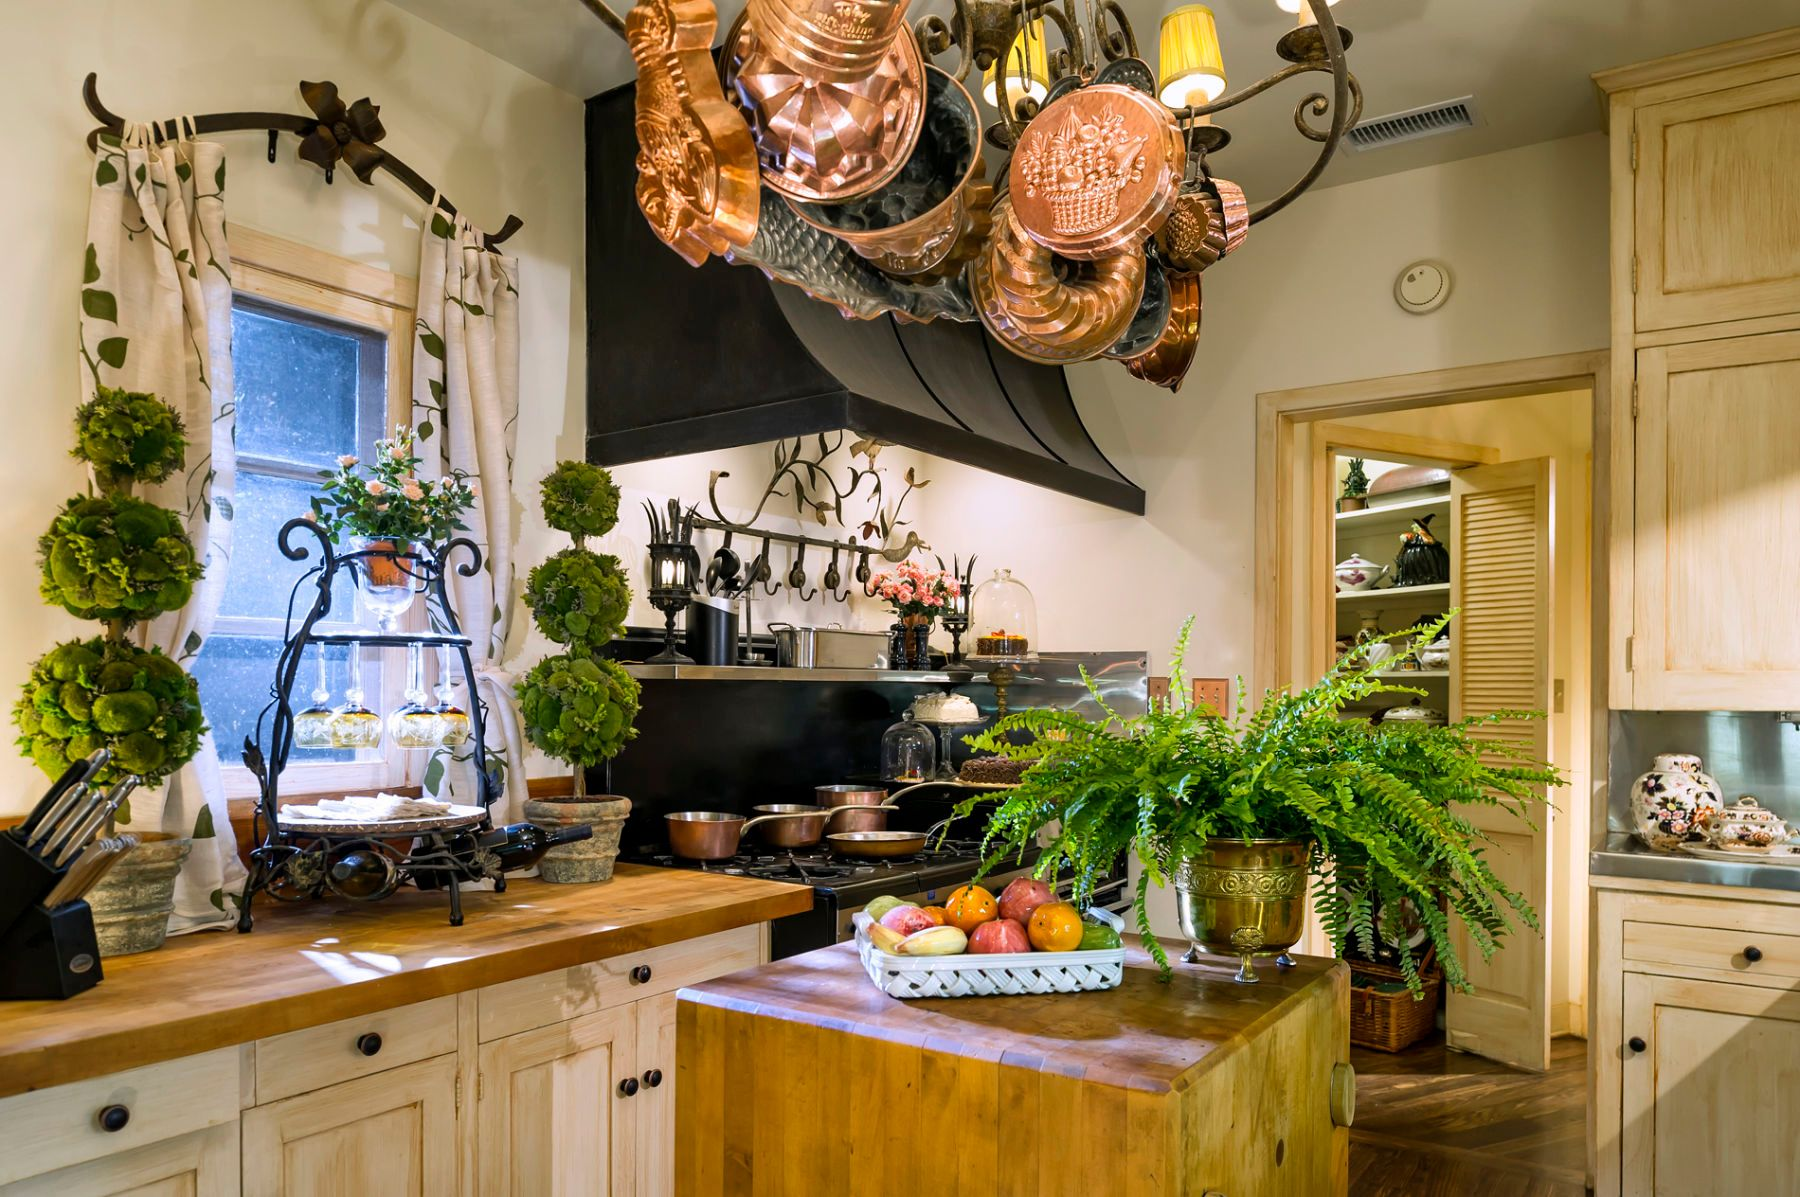 1sierra_mar_7755_kitchen